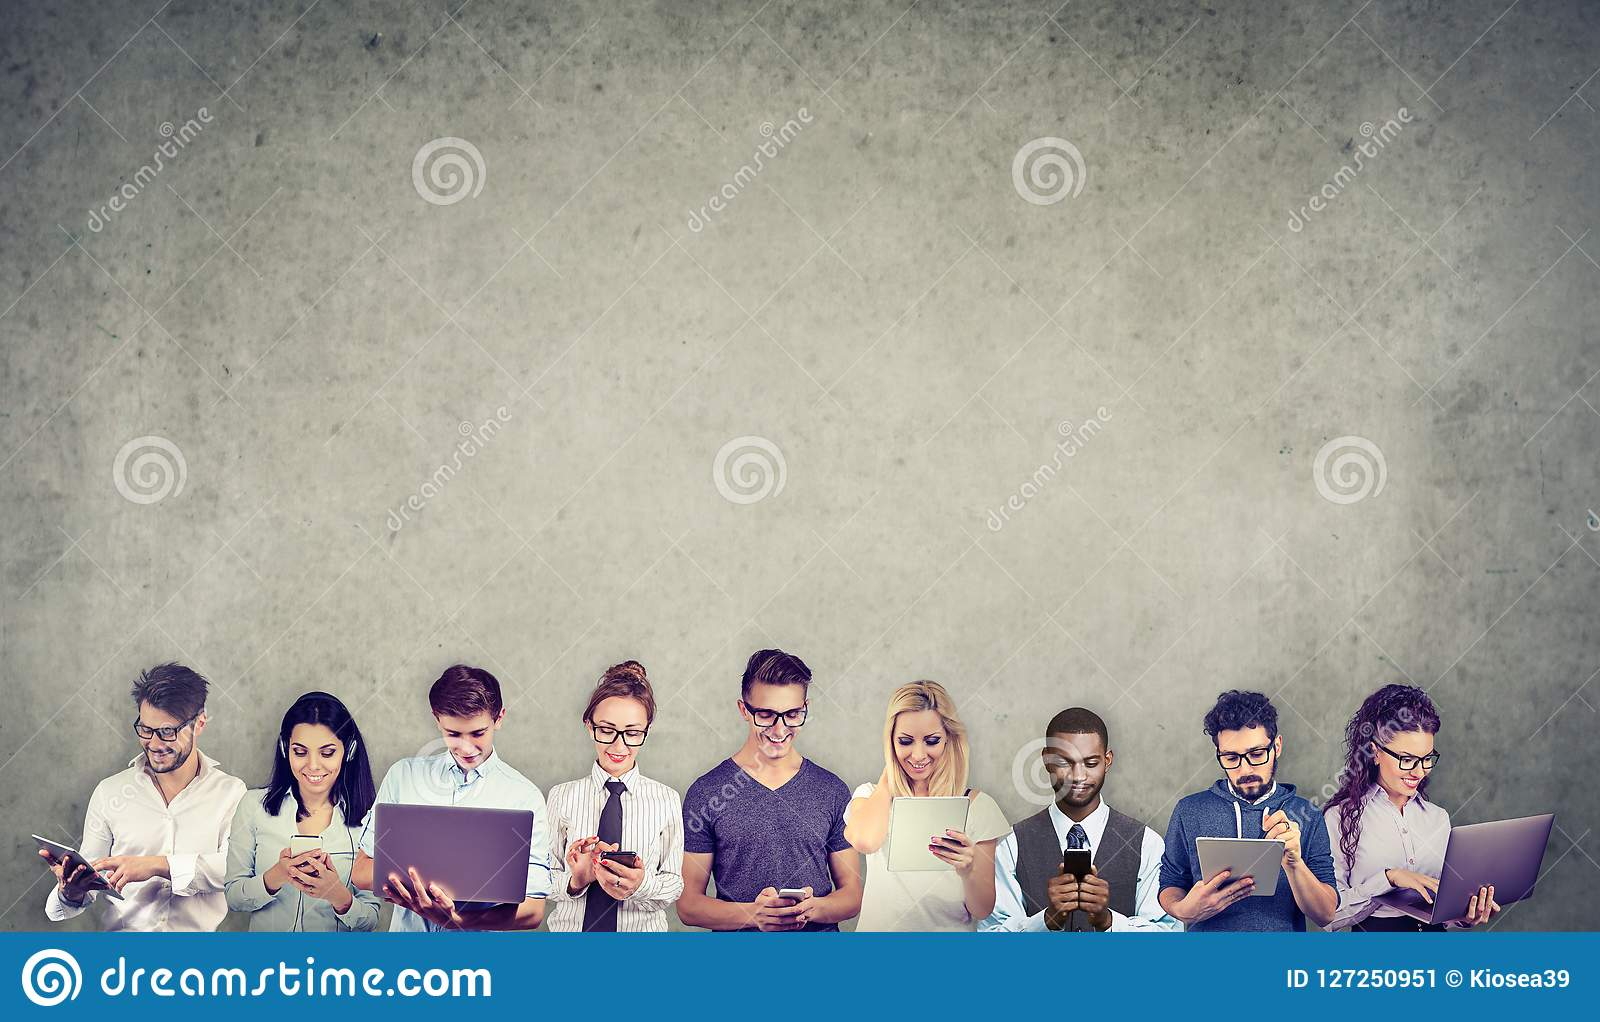 Group of multicultural people connected by using digital mobile gadgets